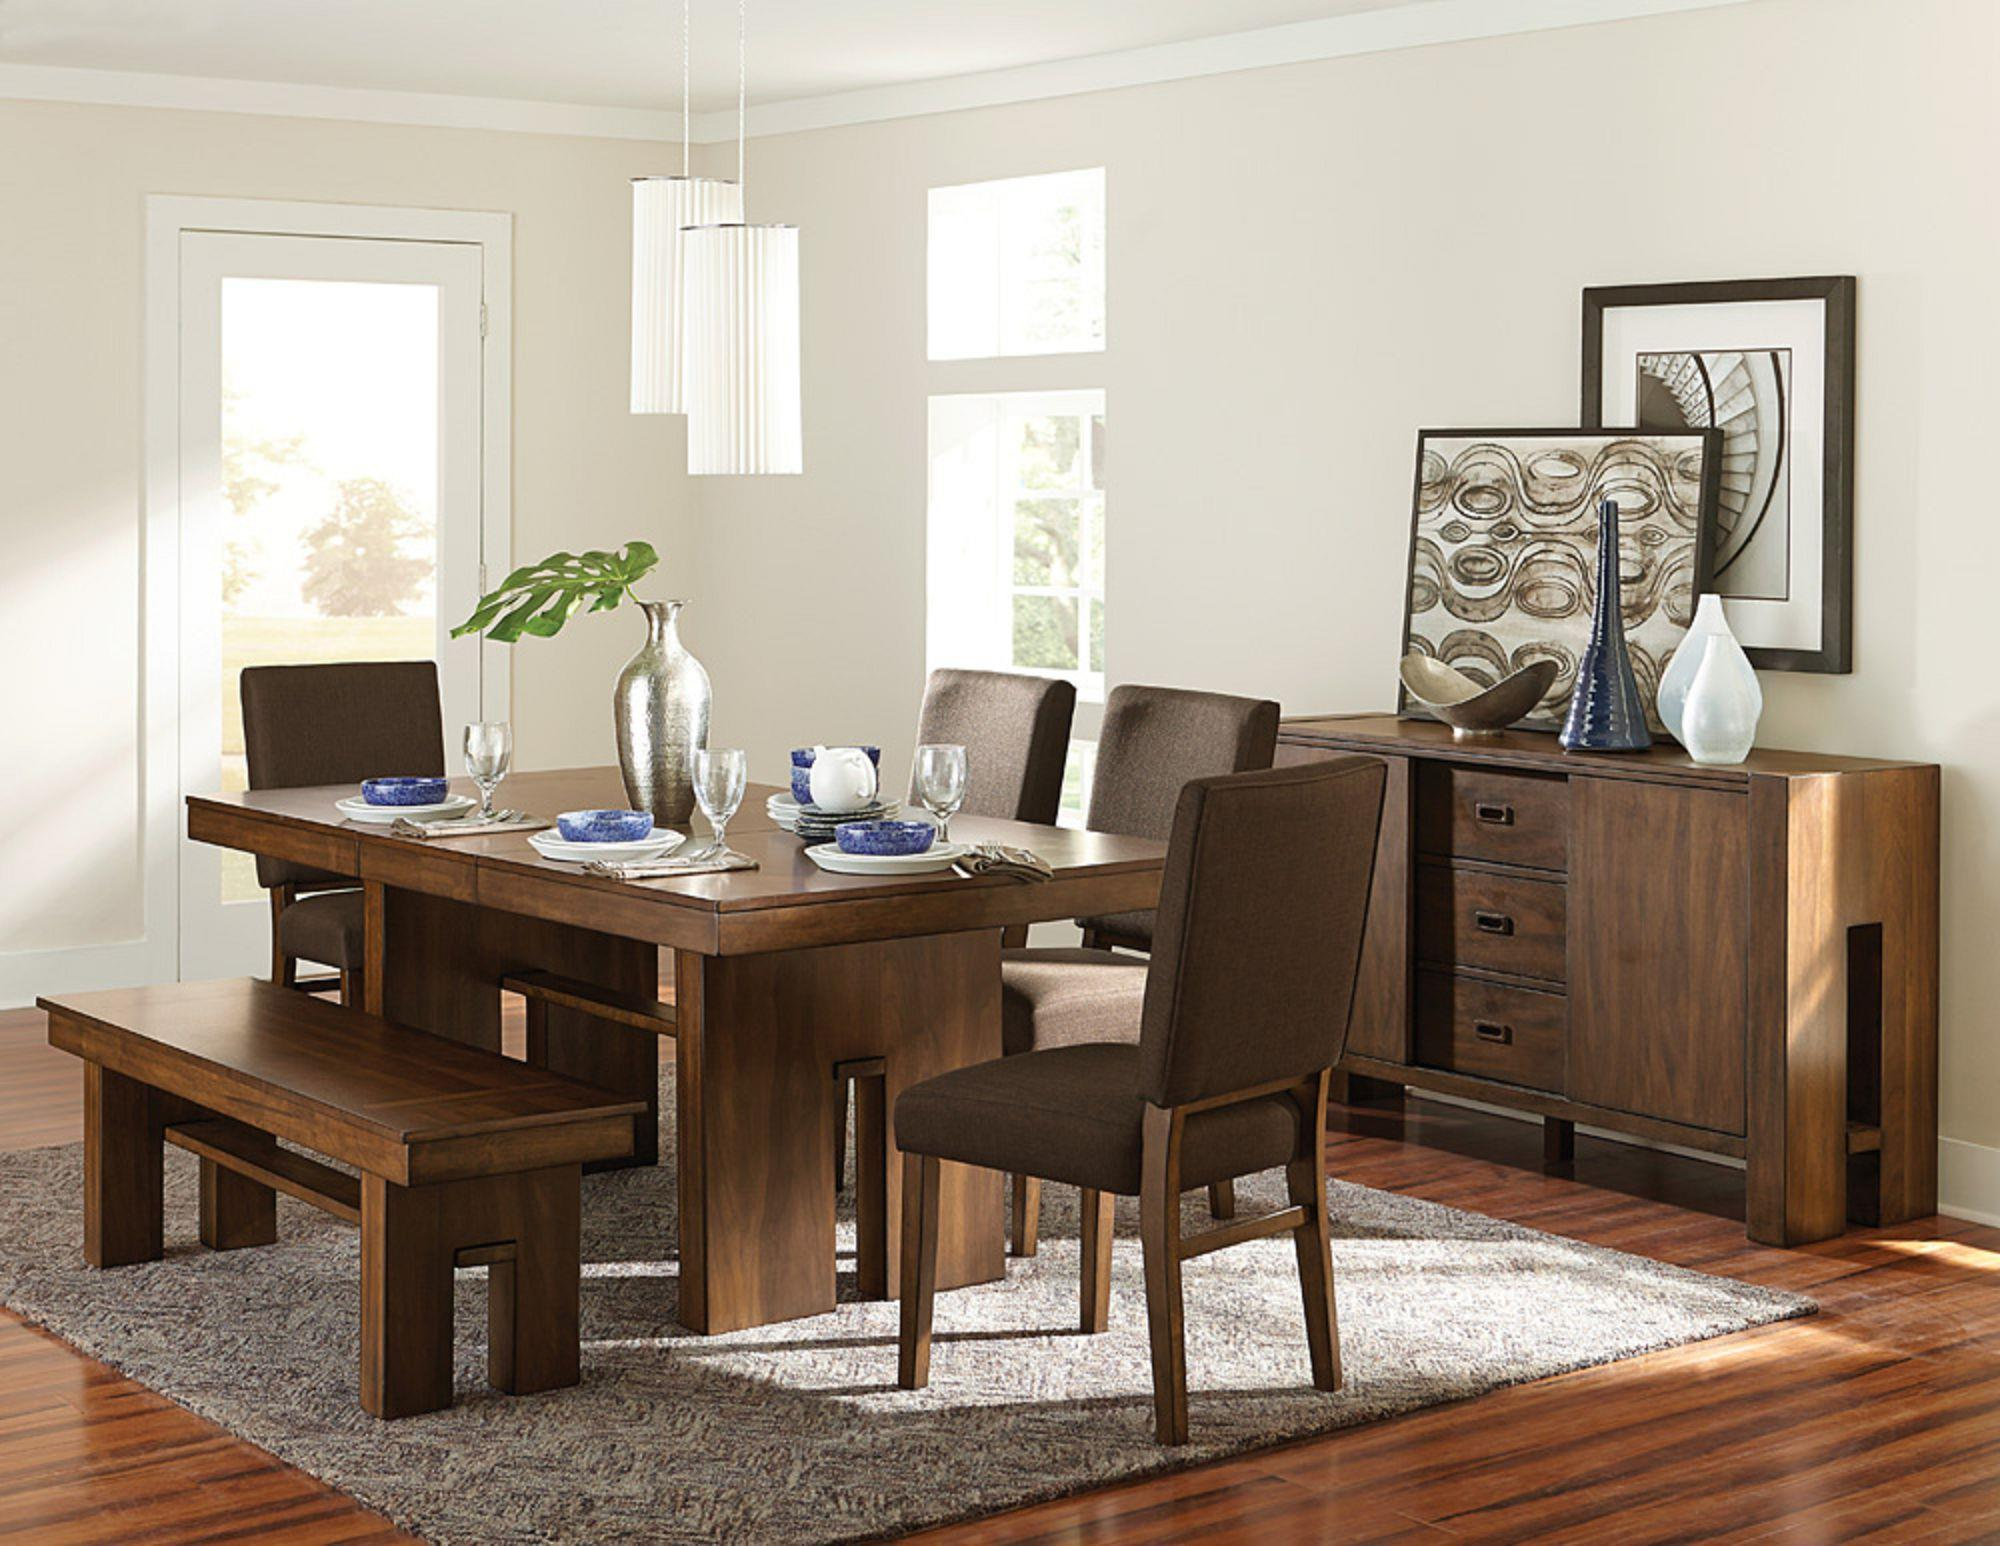 Homelegance Hedley Contemporary Dining Table With Self Storing Leaf